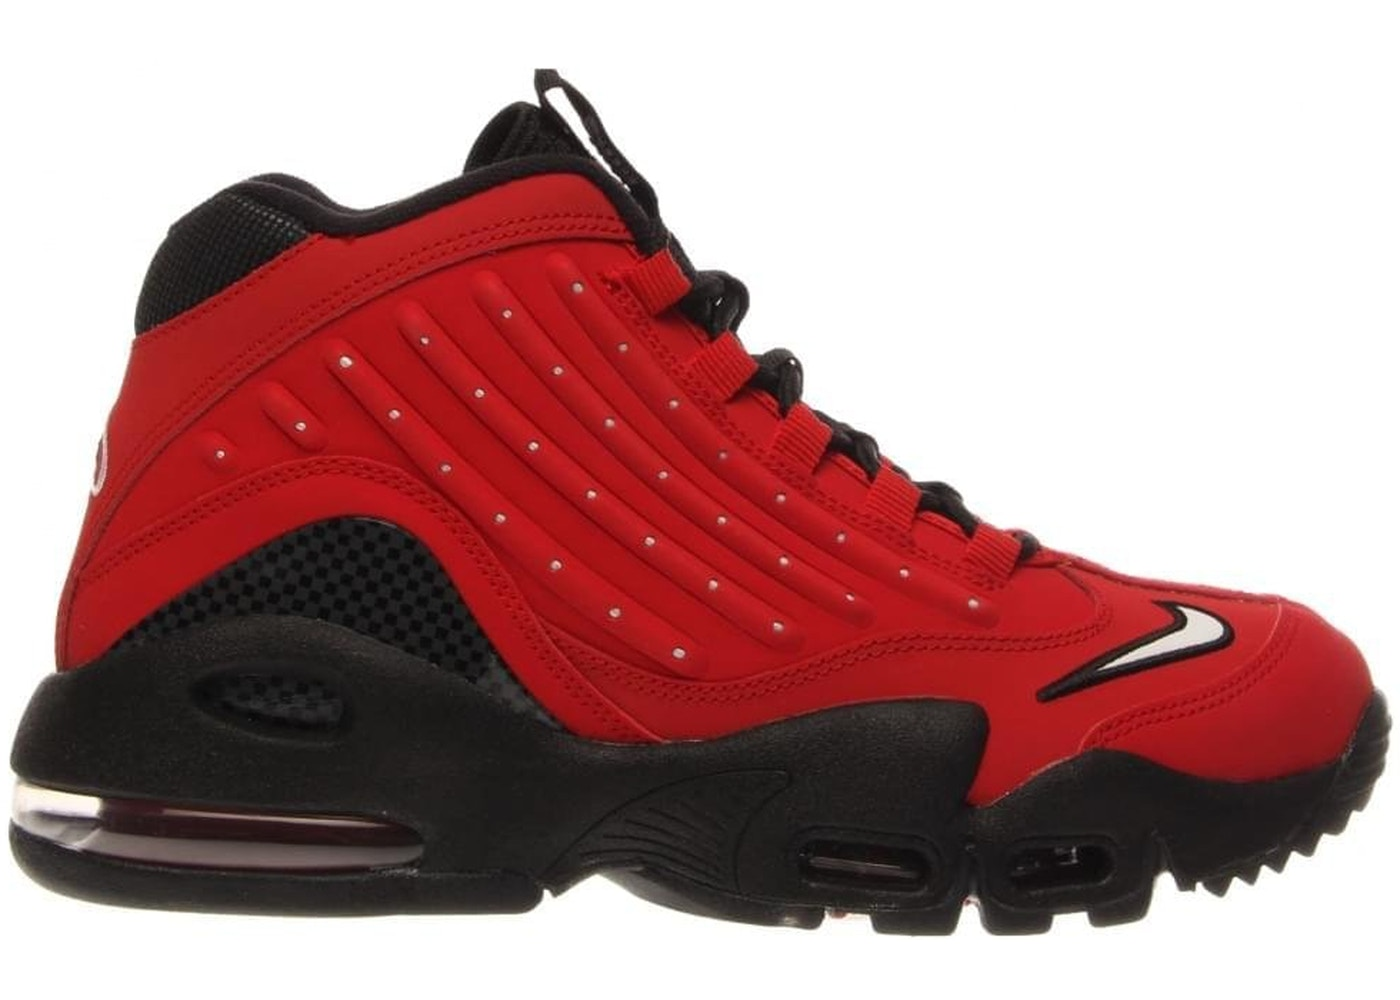 Nike Air Griffey Max 2 University Red (GS) 443957 600